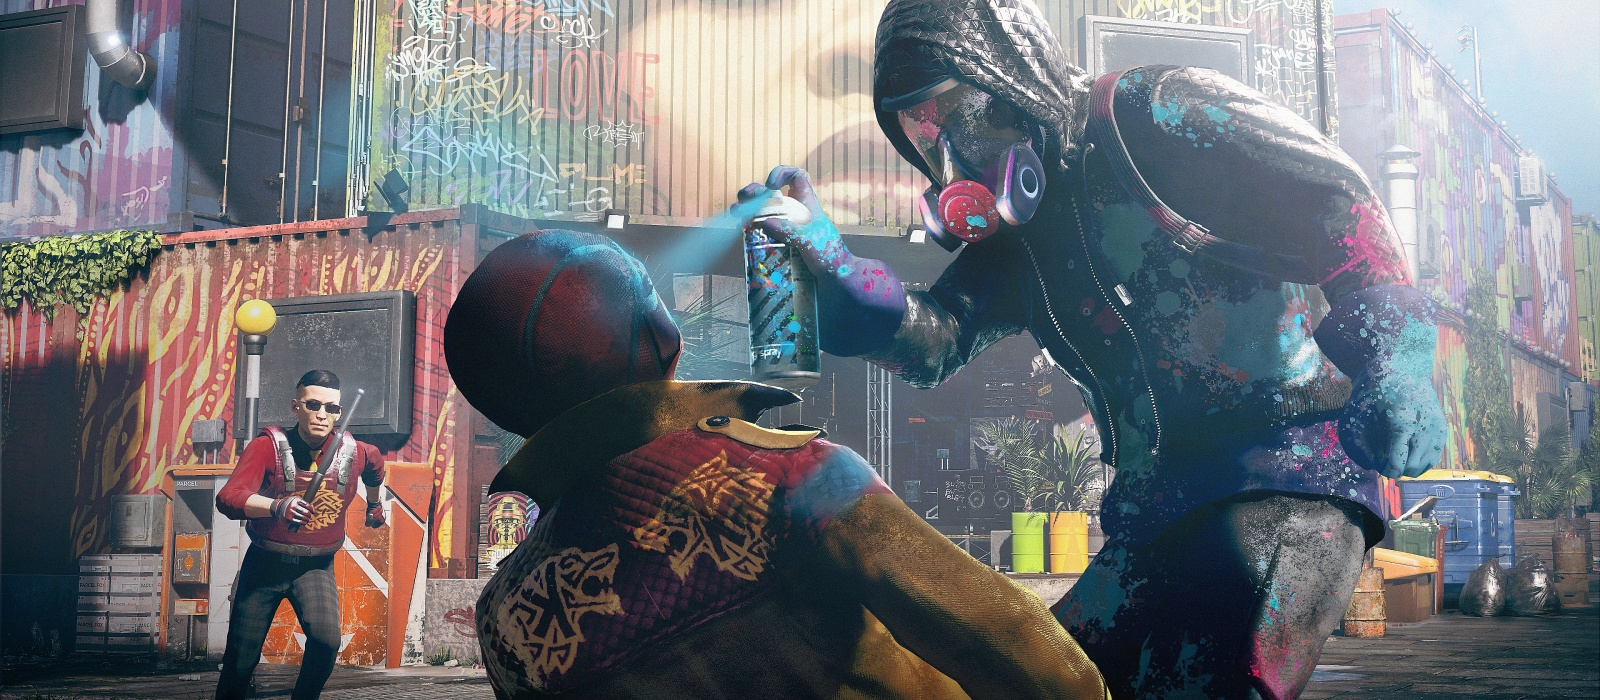 Watch Dogs: Legion has been rated by critics